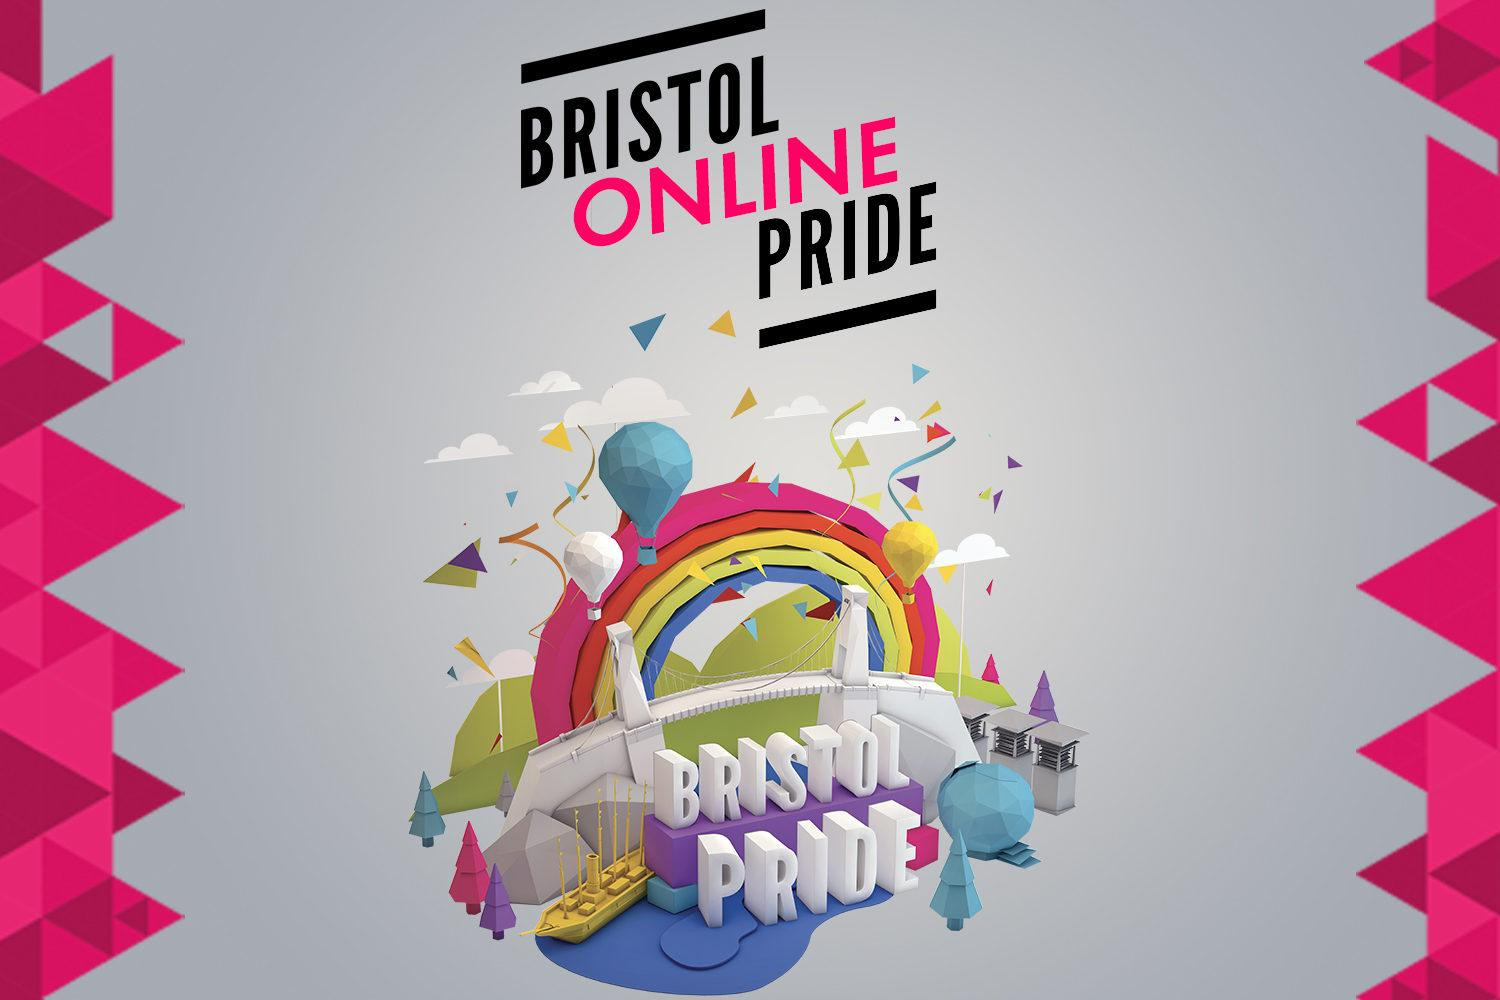 Bristol Virtual Pride Day